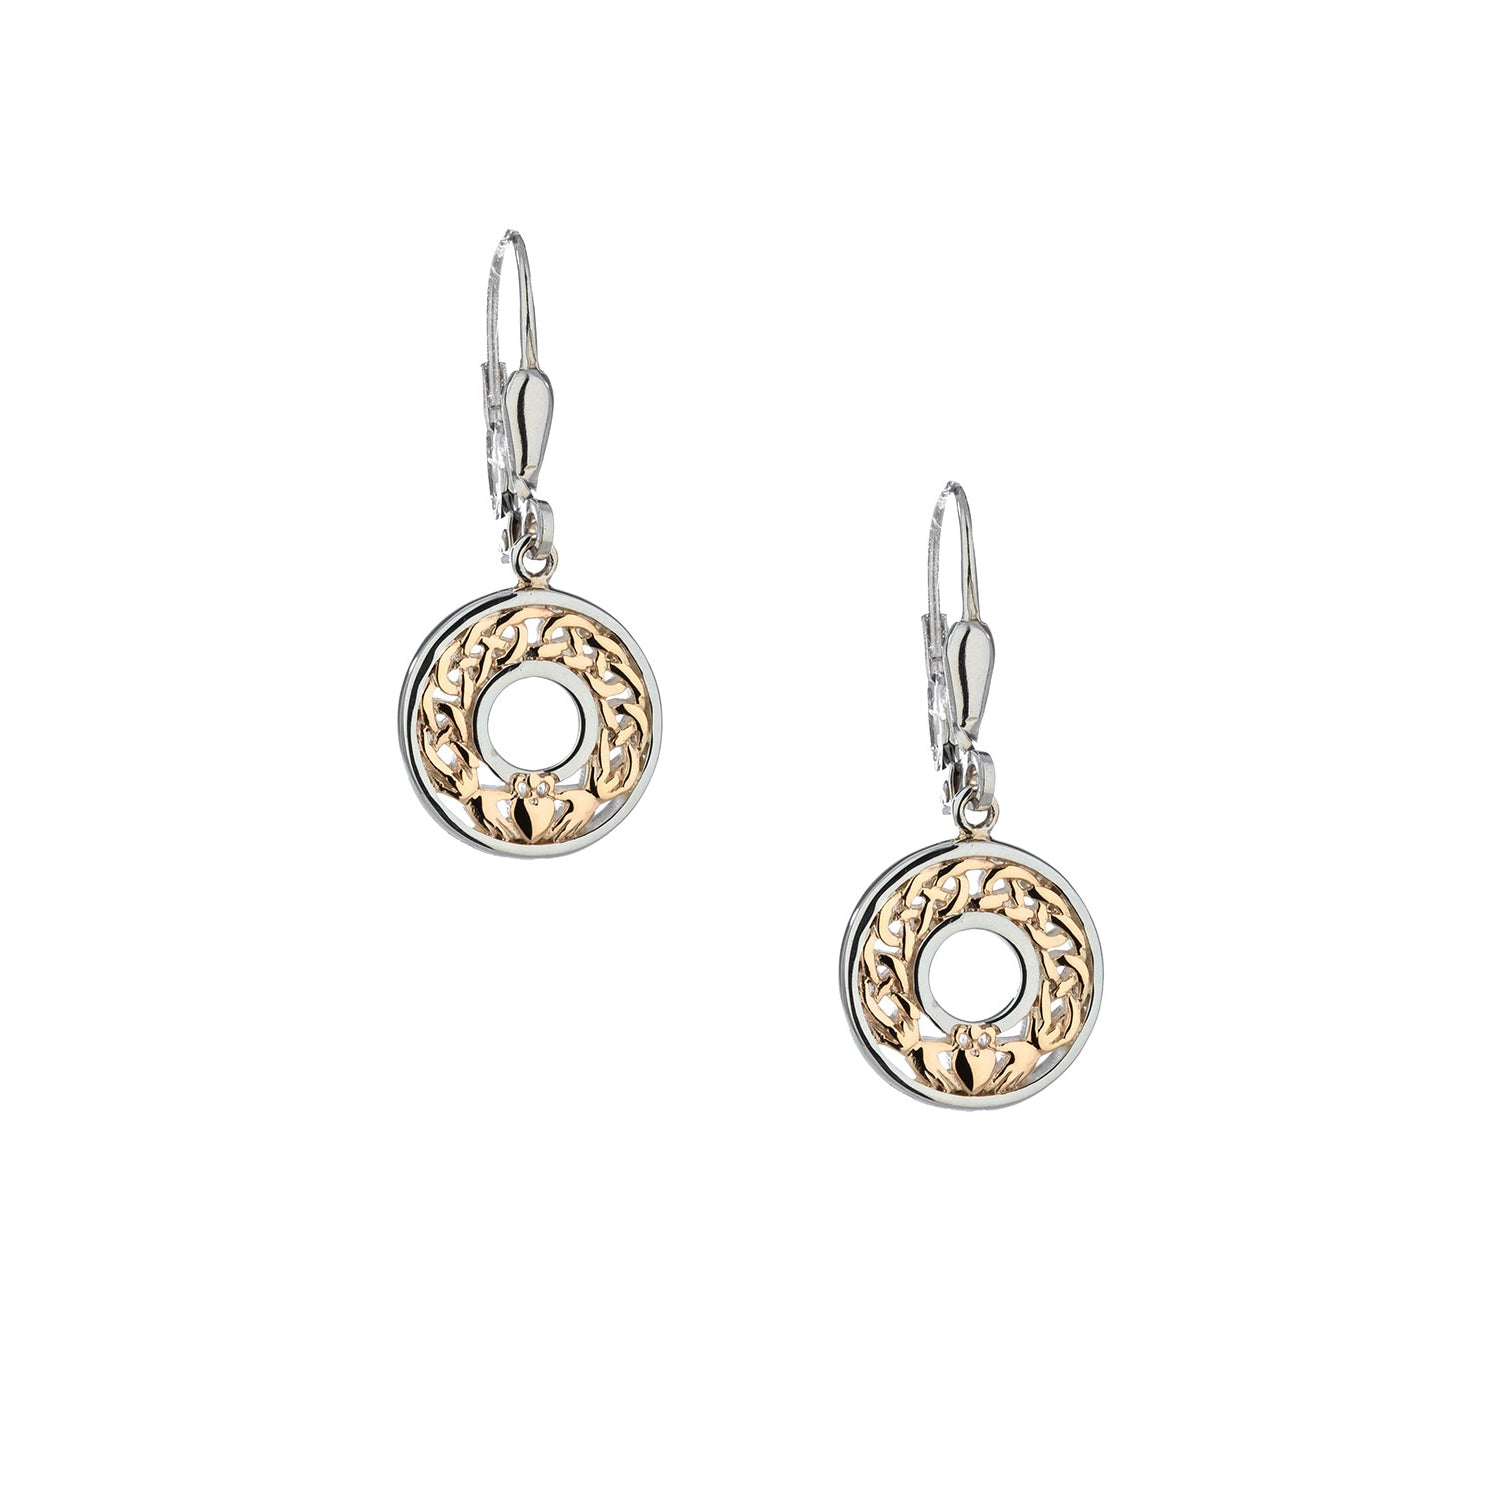 Earrings 10k Claddagh Leverback Earrings from welch and company jewelers near syracuse ny